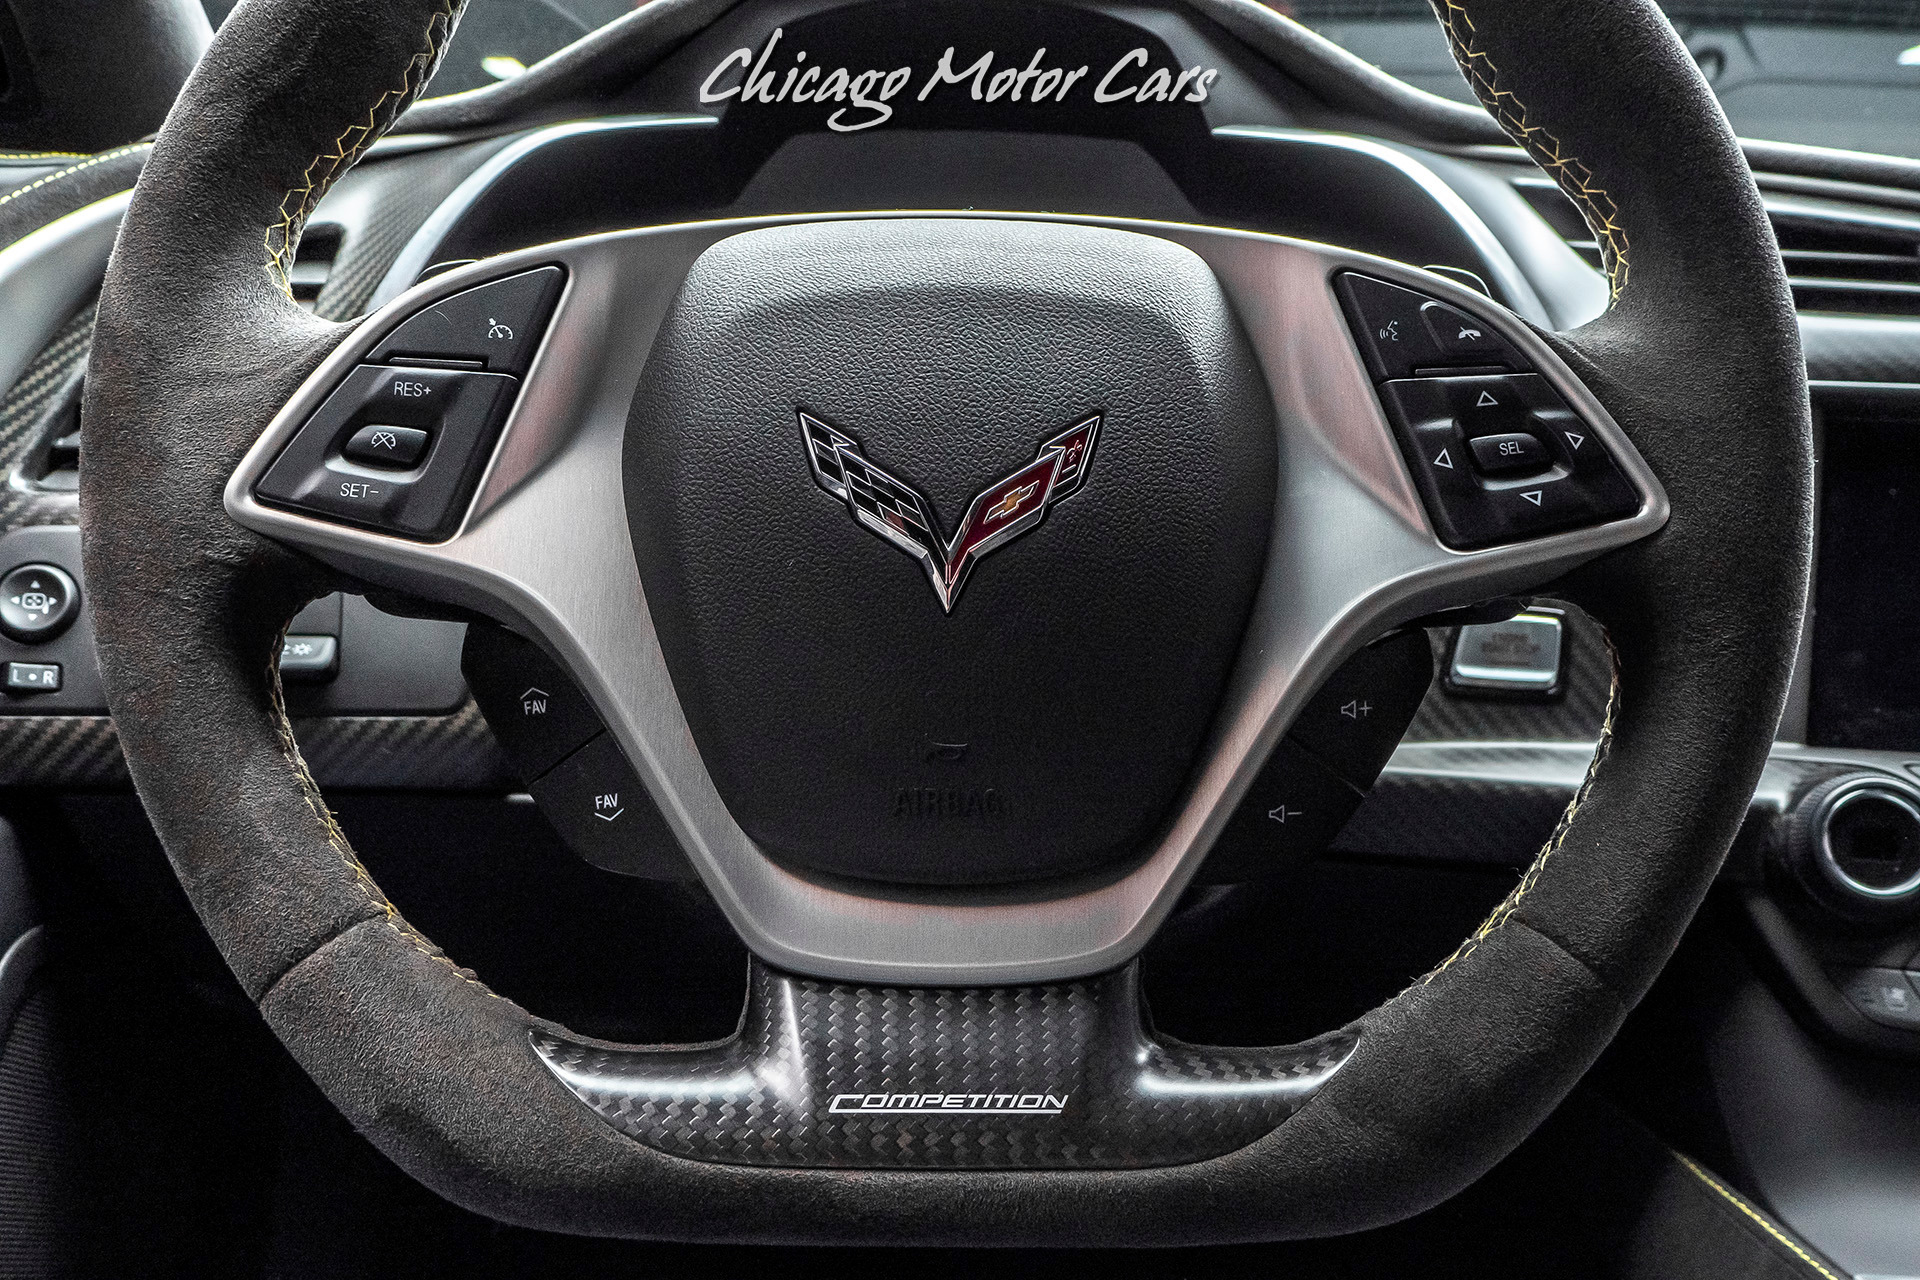 Used-2016-Chevrolet-Corvette-C7R-Z06-C7R-Edition-ONLY-832-MILES-AUTO-3LZ